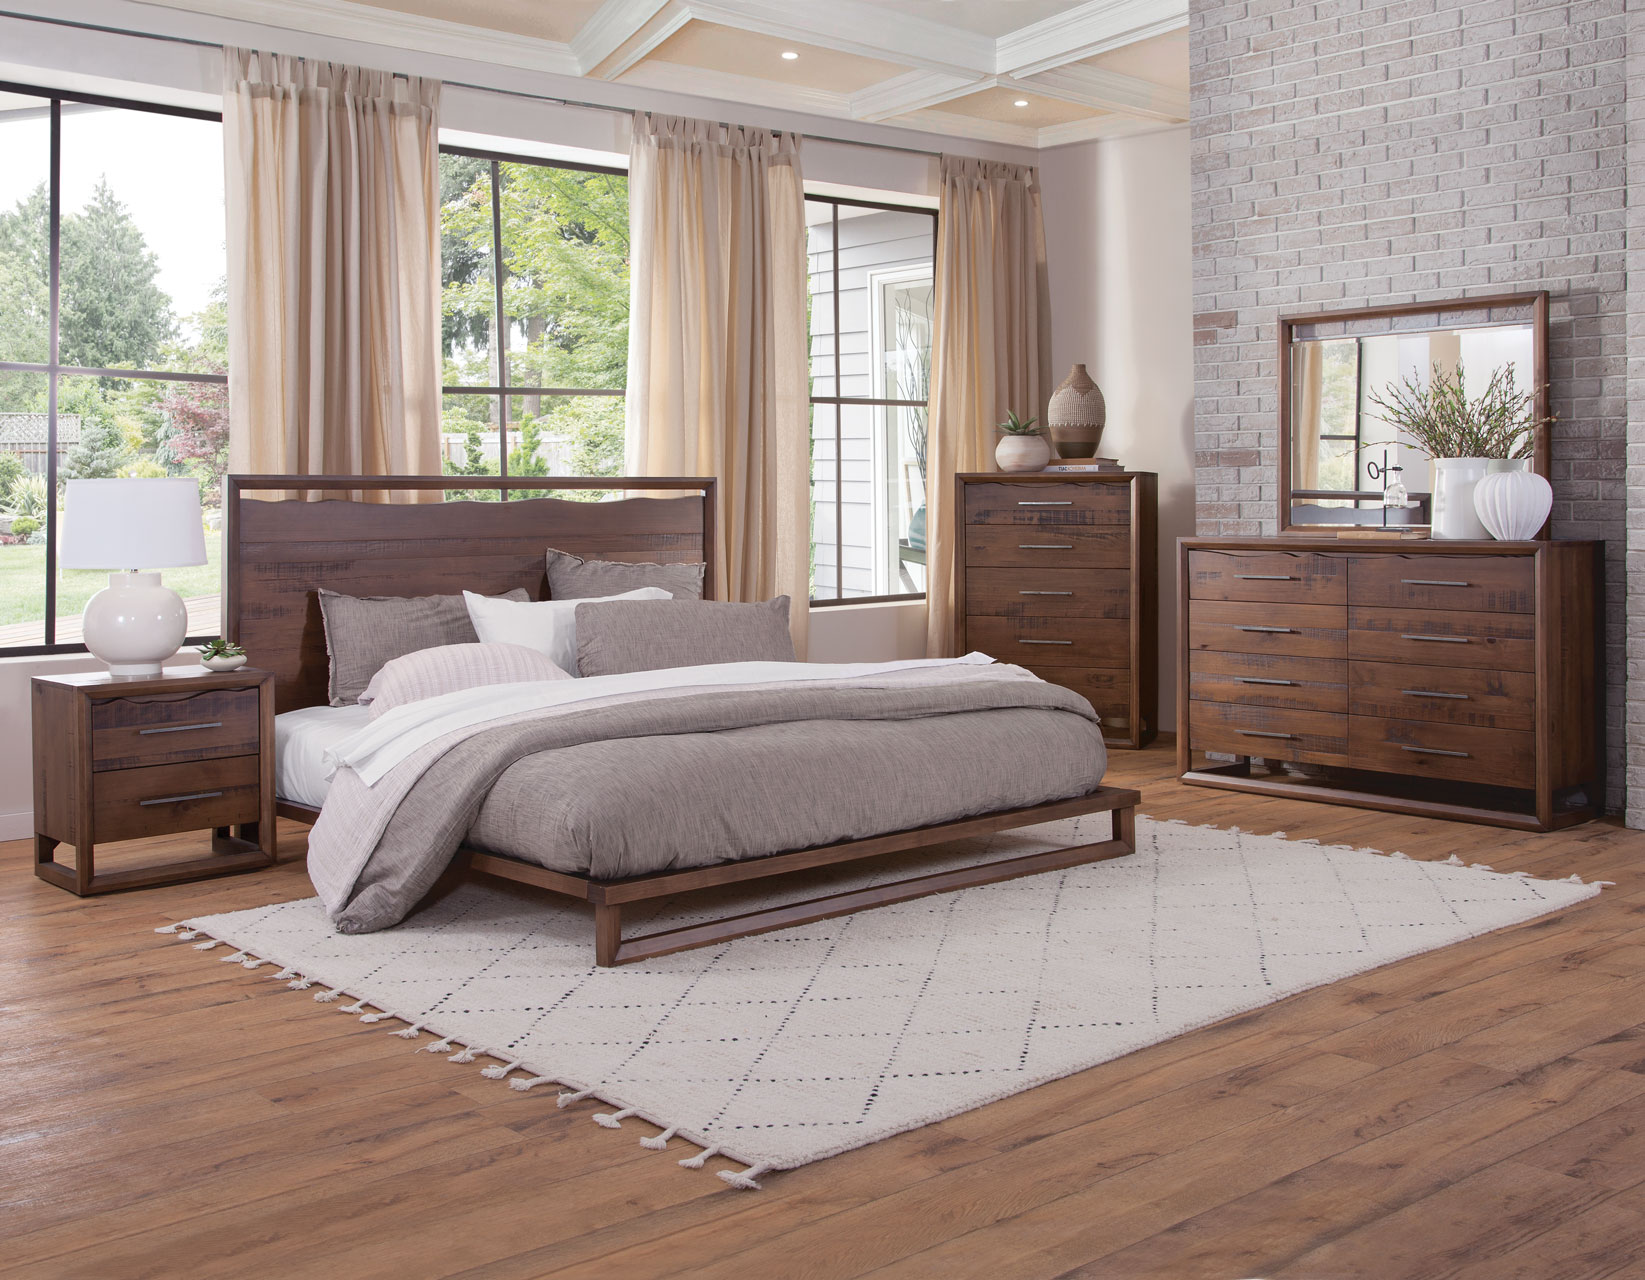 Lofton King Bedroom Group by Steve Silver at Northeast Factory Direct